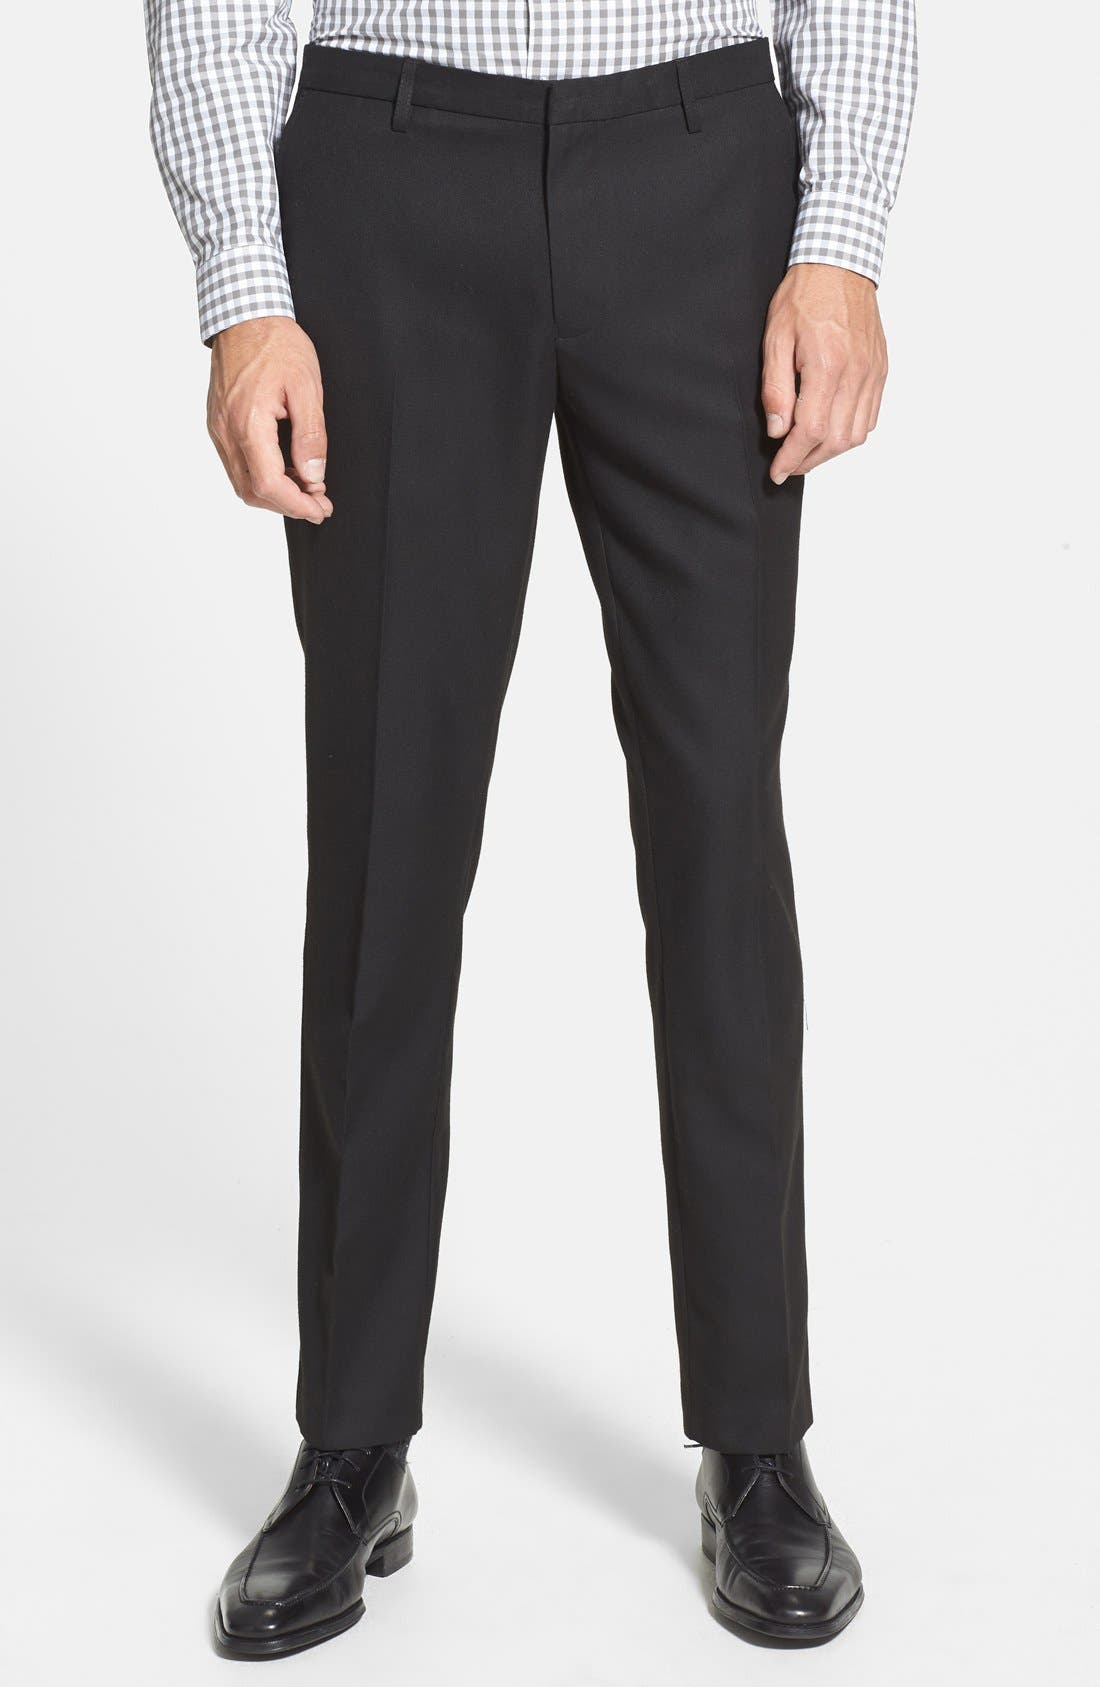 TOPMAN Skinny Fit Cotton Flannel Trousers, Main, color, 001